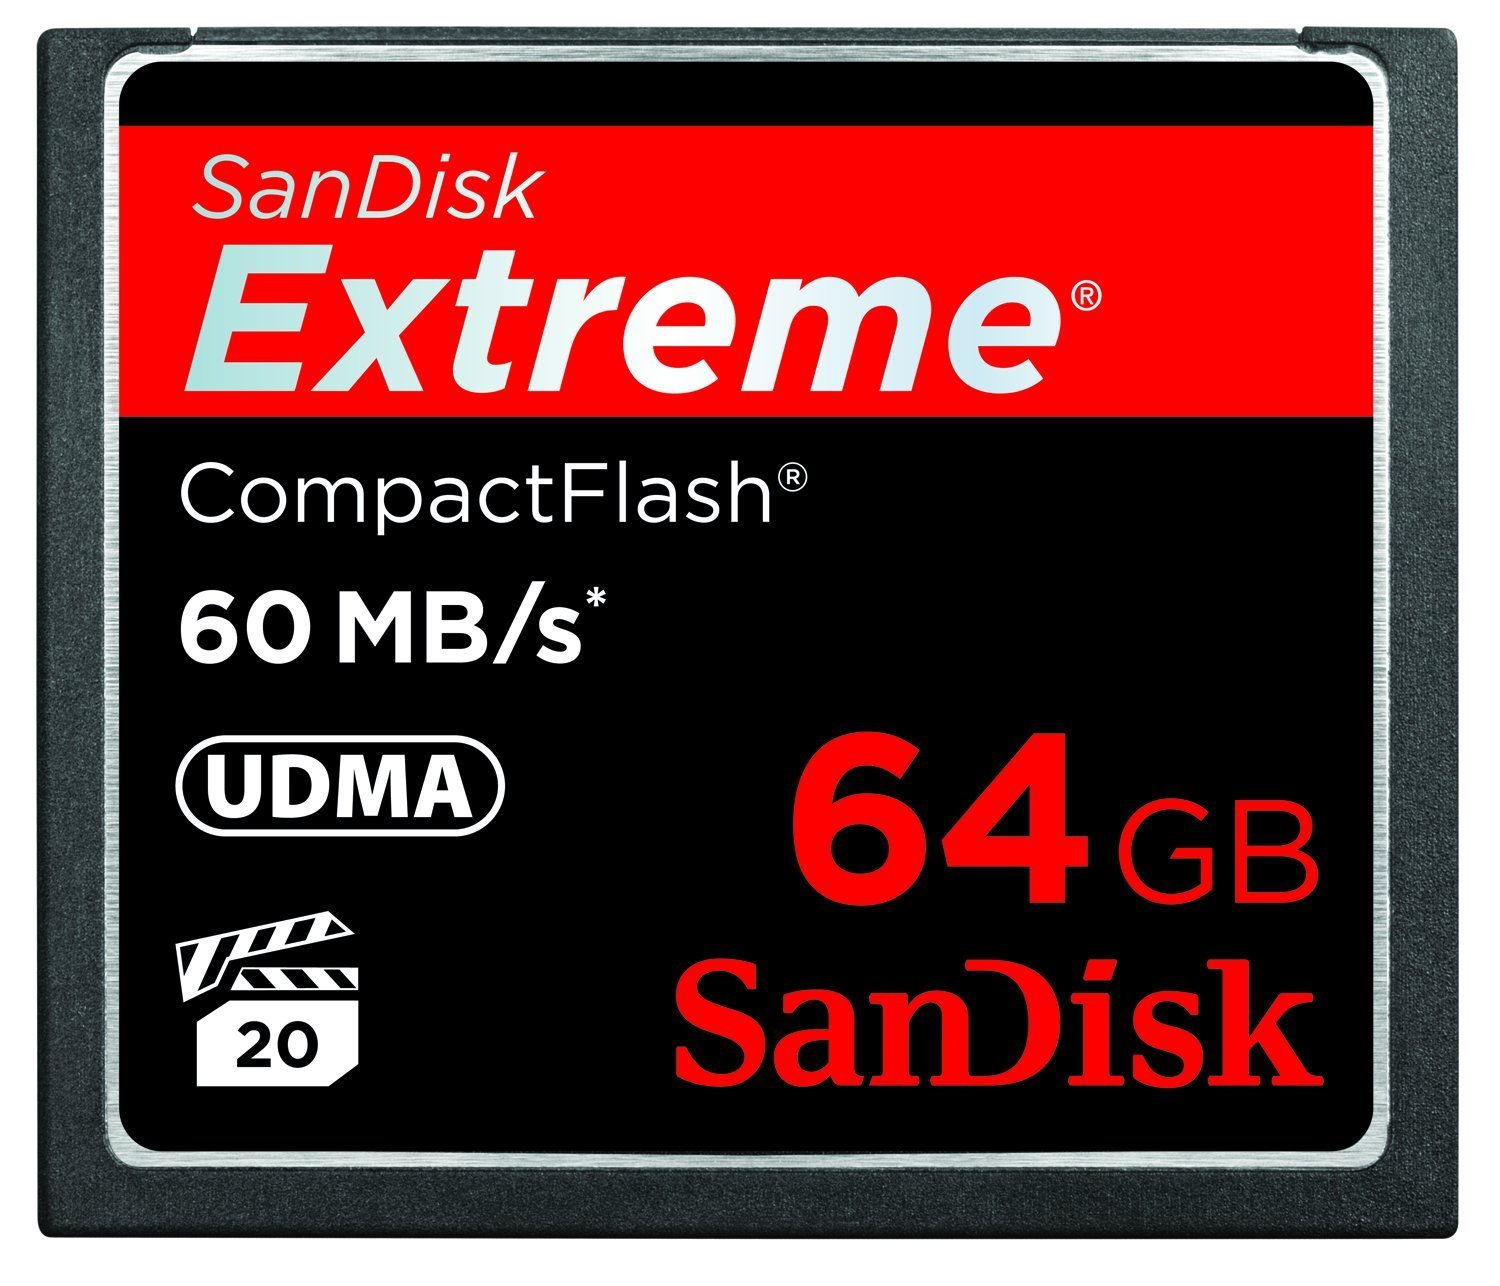 SanDisk Extreme CompactFlash 64 GB Memory Card 60MB/s SDCFX - 06